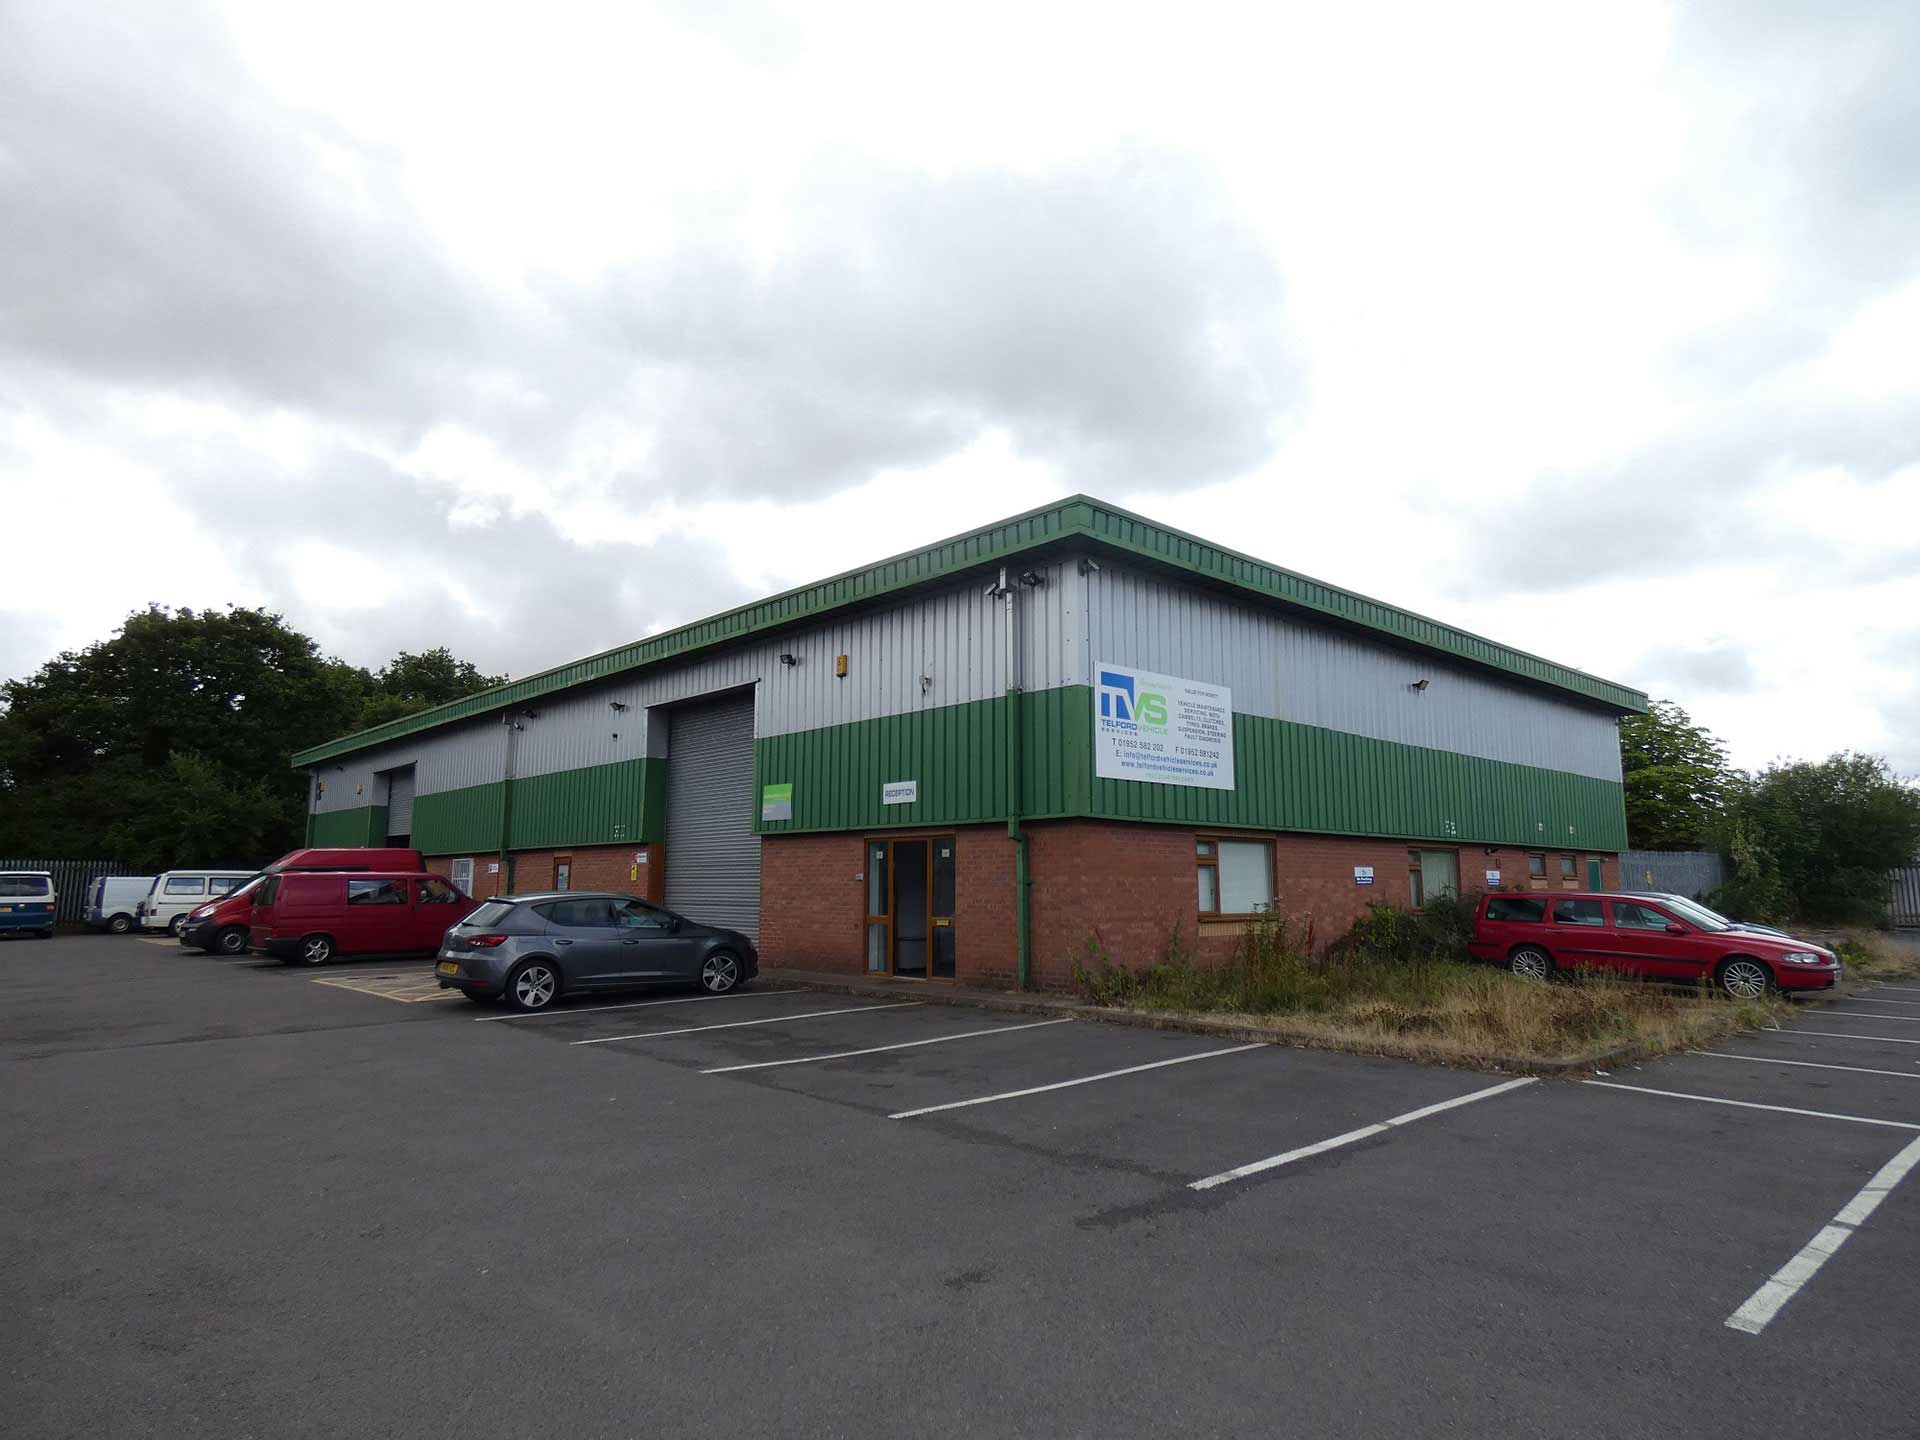 Unit 1 Halesfield 24 - Unit 1, Sovereign Park, Halesfield 24, Telford, Shropshire, TF7 4NZ